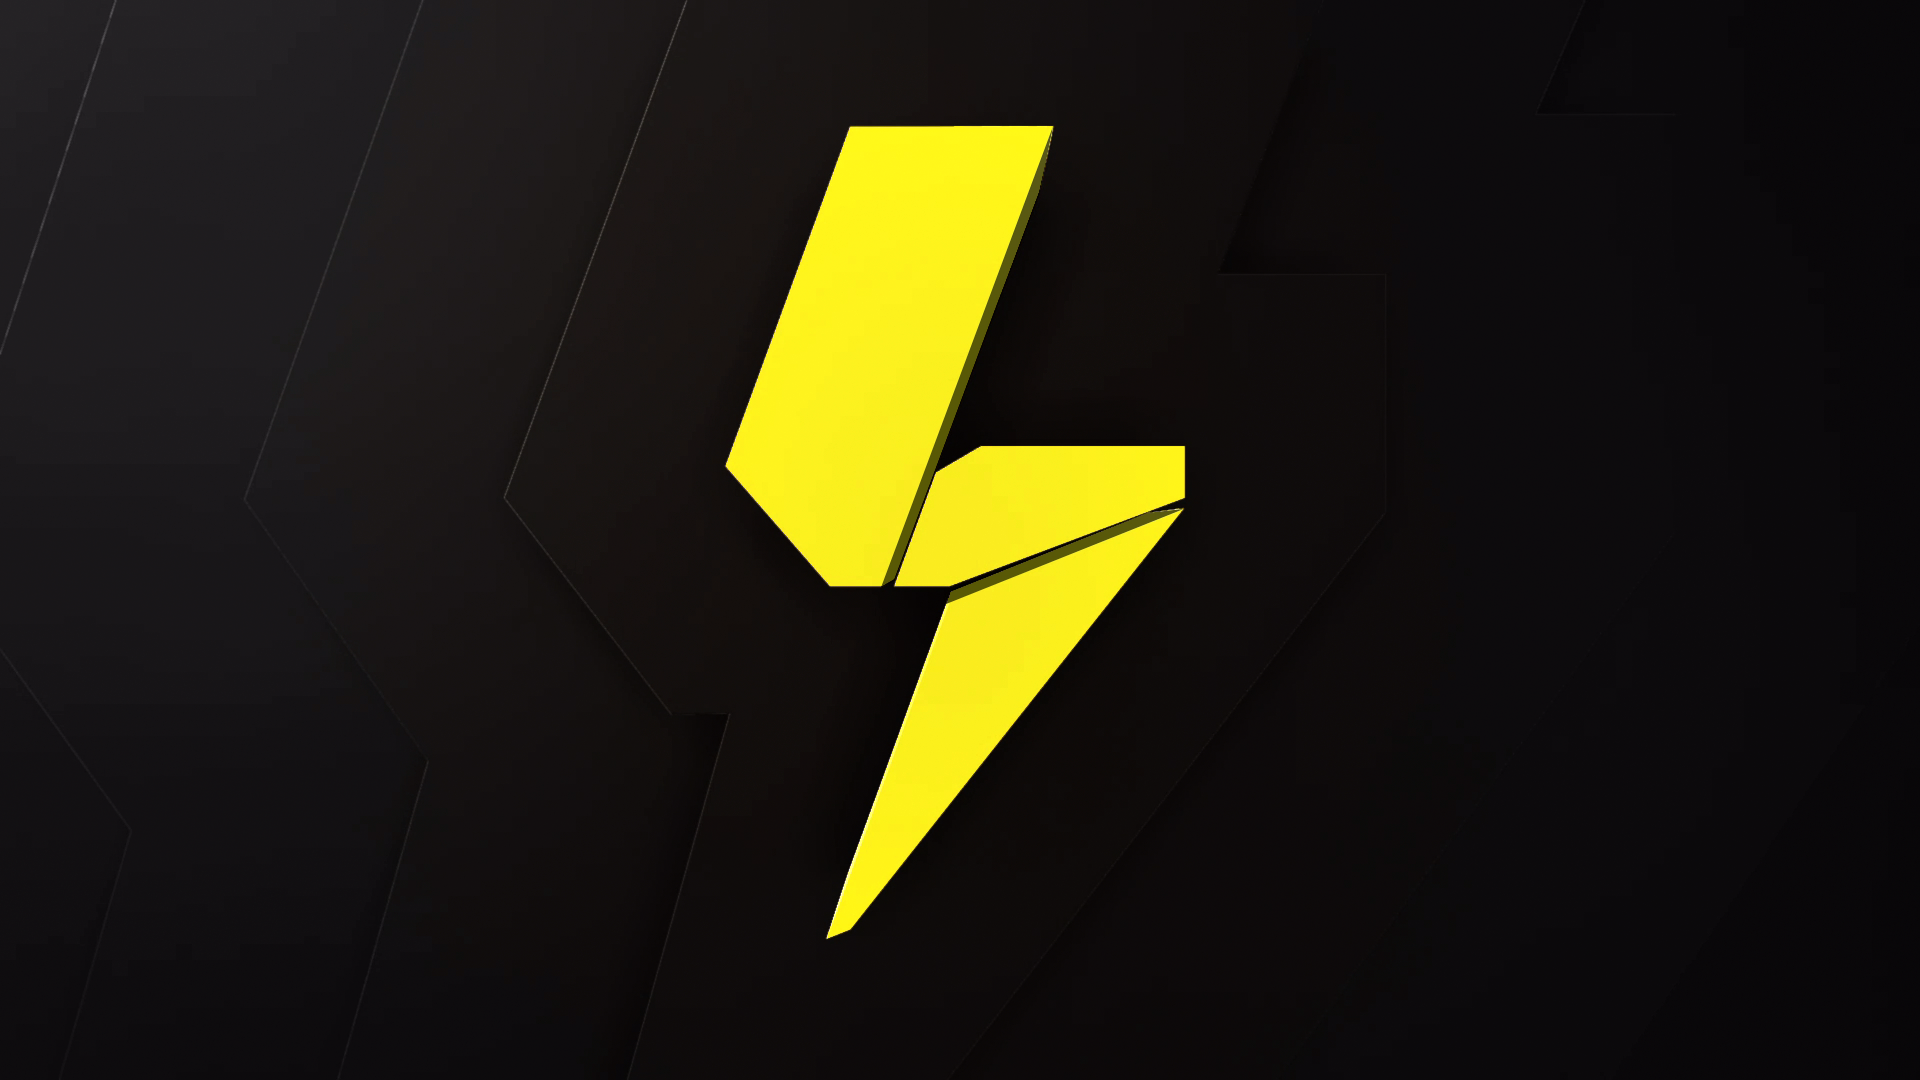 Lachlan yellow lightning bolt over black background